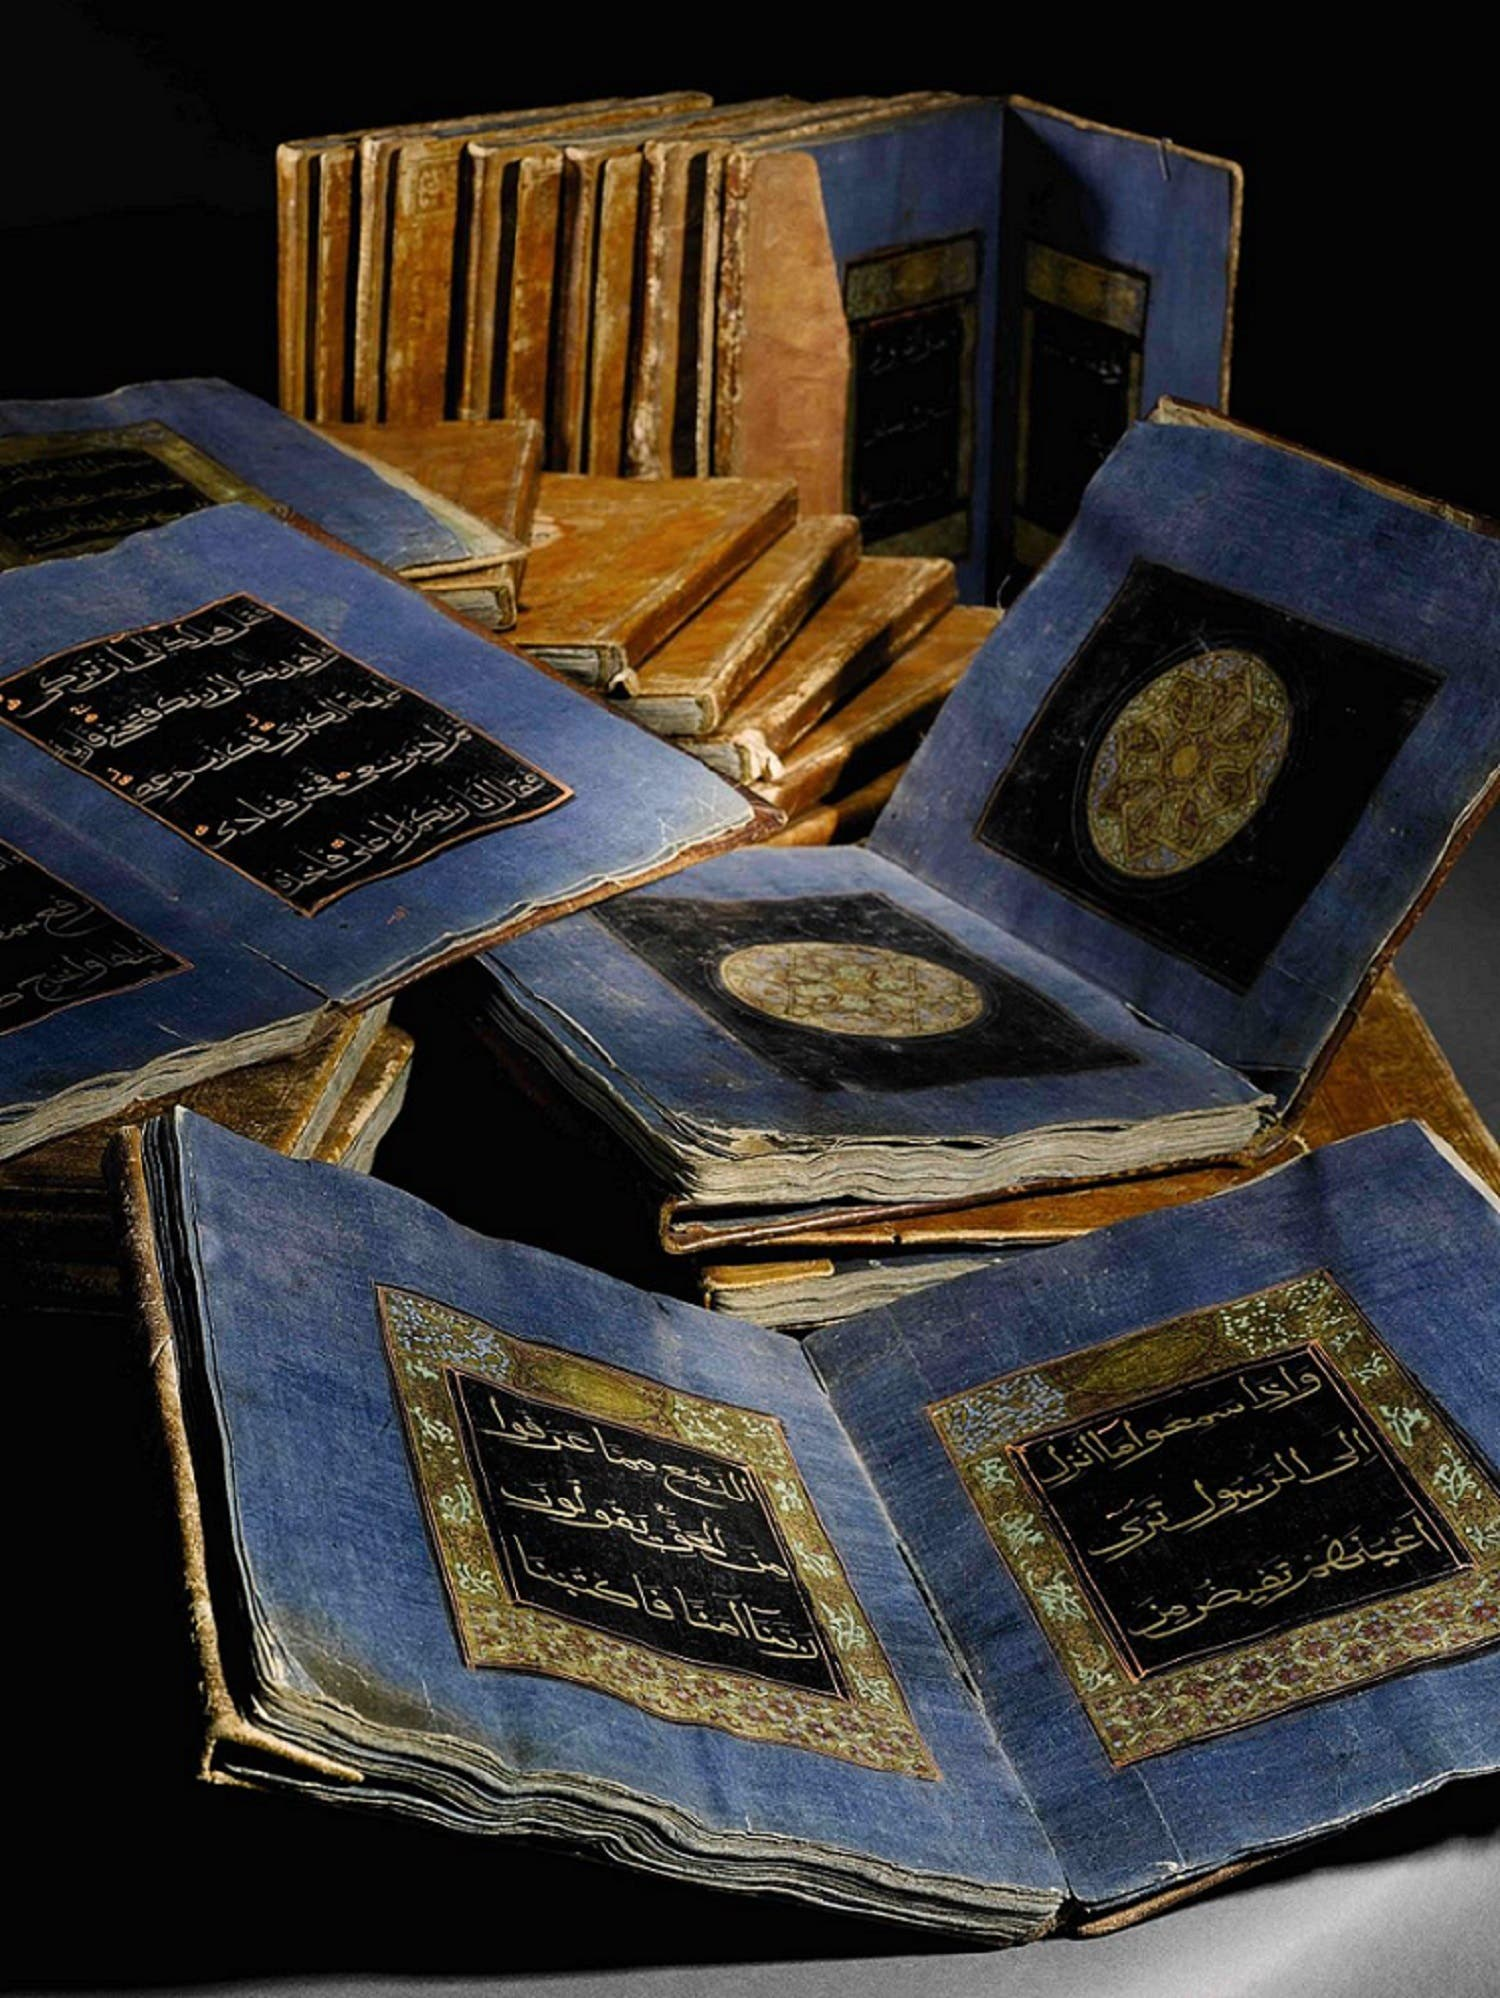 Holy Qur'an copied in China in 30 volumes (1156 AH, 1743 CE), China, Ink, gold and colours on paper. (Courtesy: Zayed National Museum, Abu Dhabi Tourism & Culture Authority).